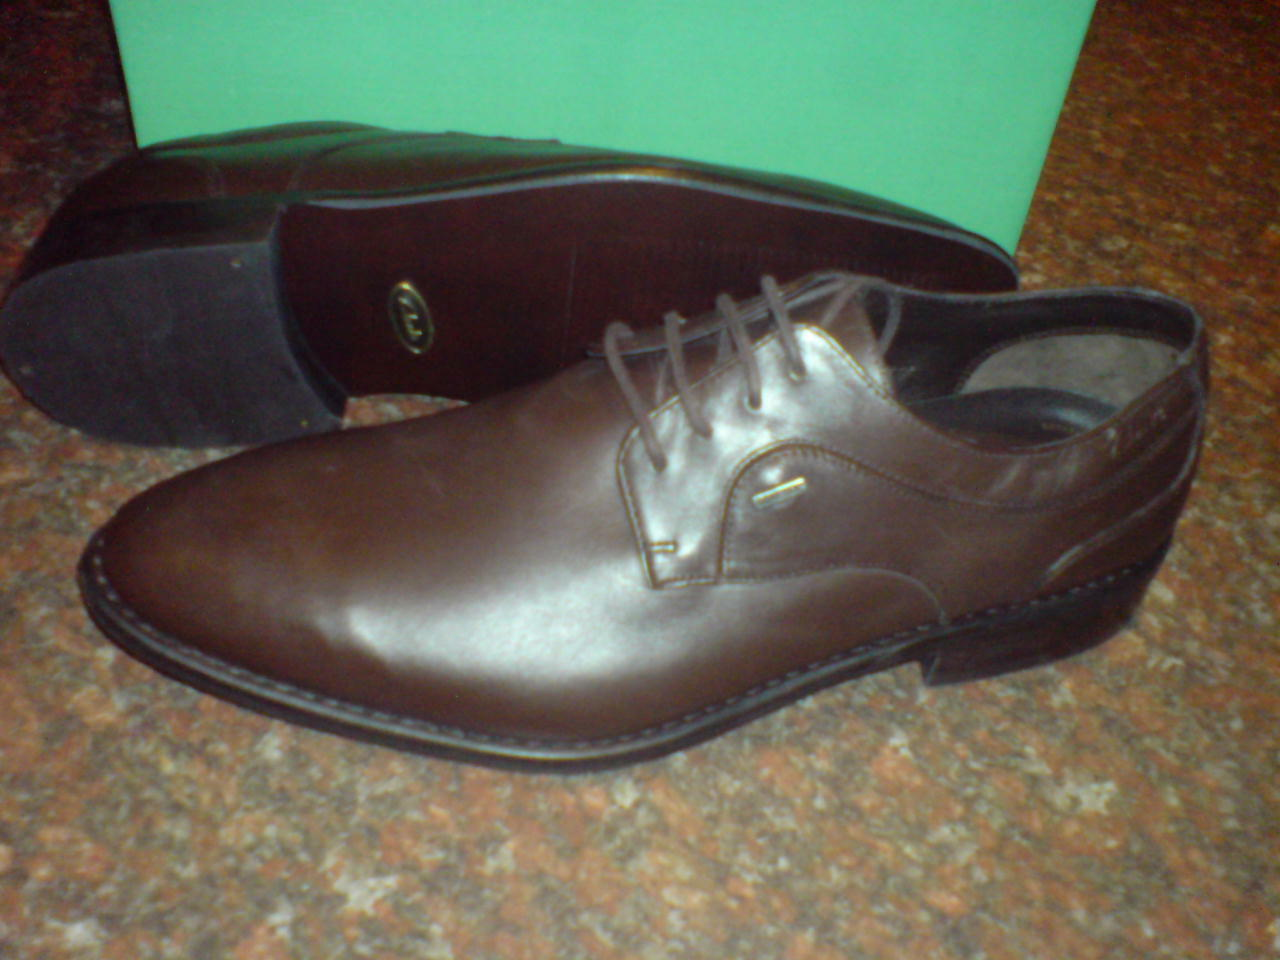 Clarks NUOVE ACTIVE Uomo Climate in GTX AIR ACTIVE NUOVE pelle marrone G 6825c2